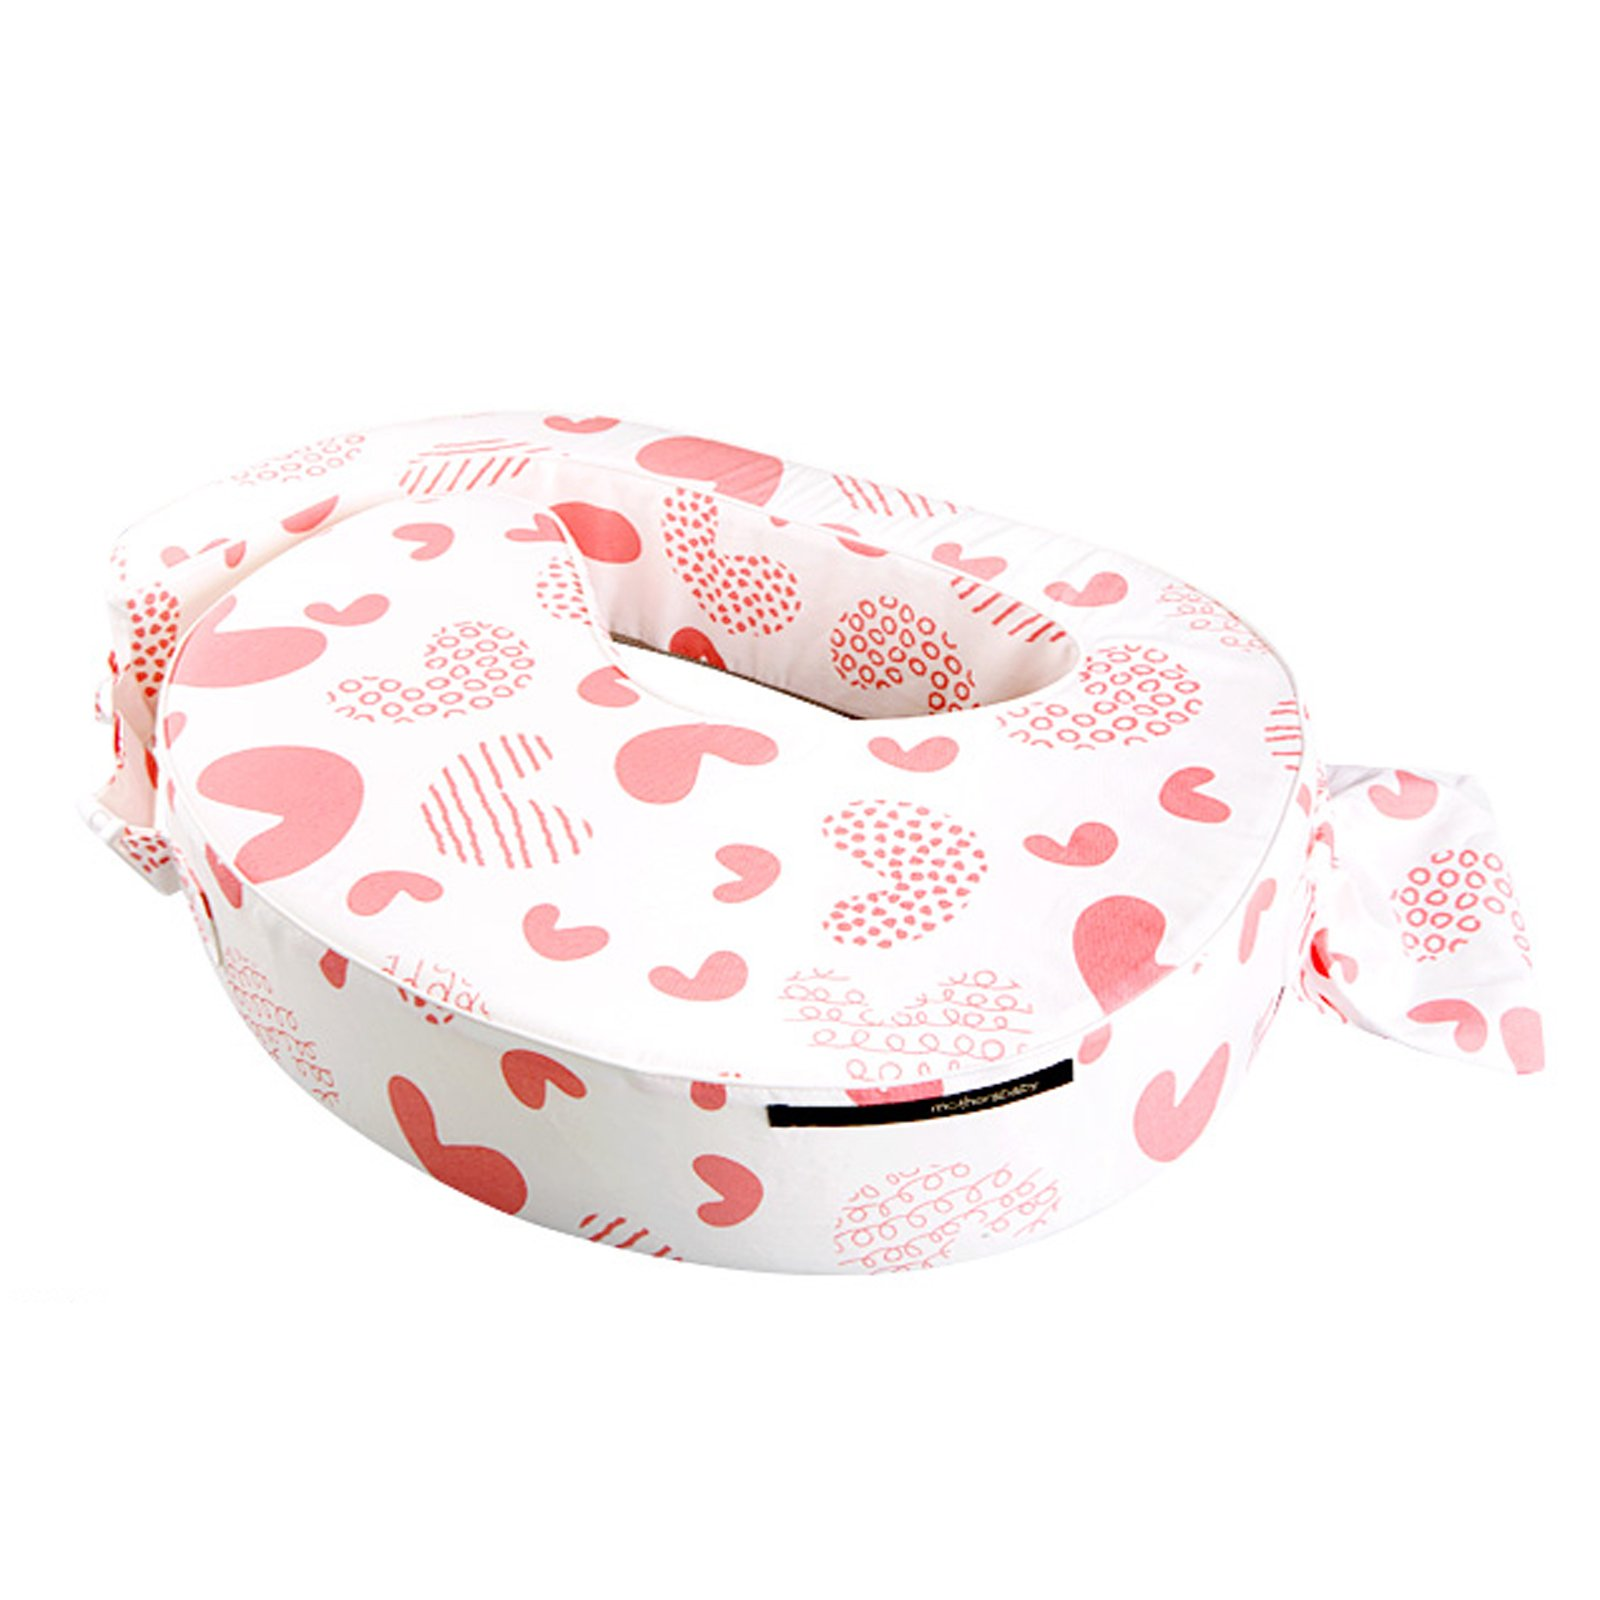 NEW Mothers Baby Love B Standard Size Breast Feeding Pillow Cushion Cotton 100% (+Inside Cover, Coral)